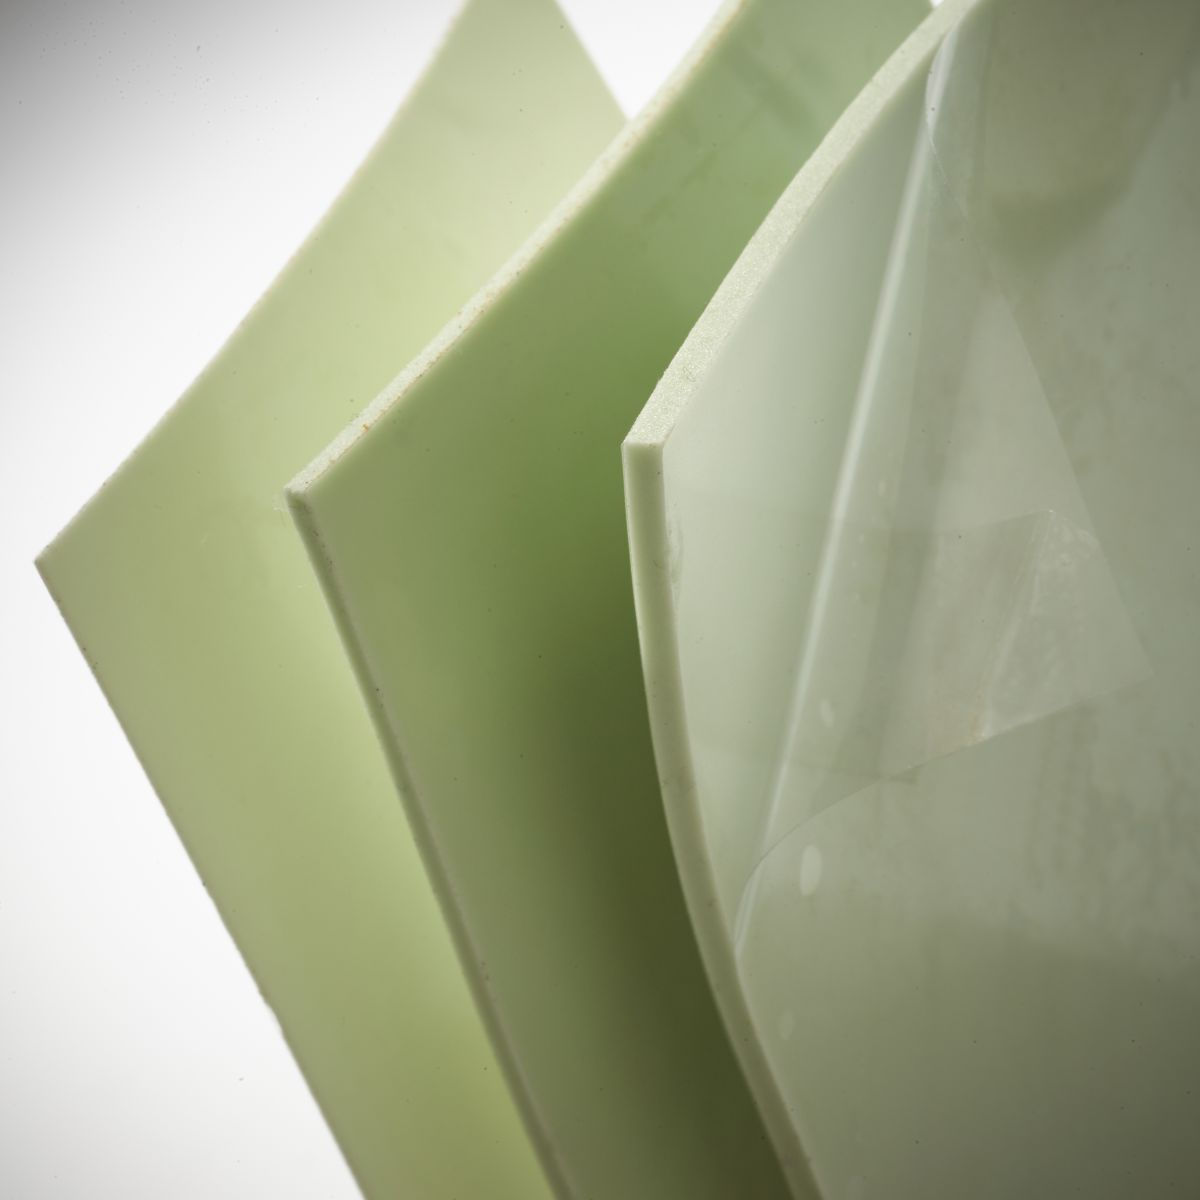 thermal conductive silicone gap filler